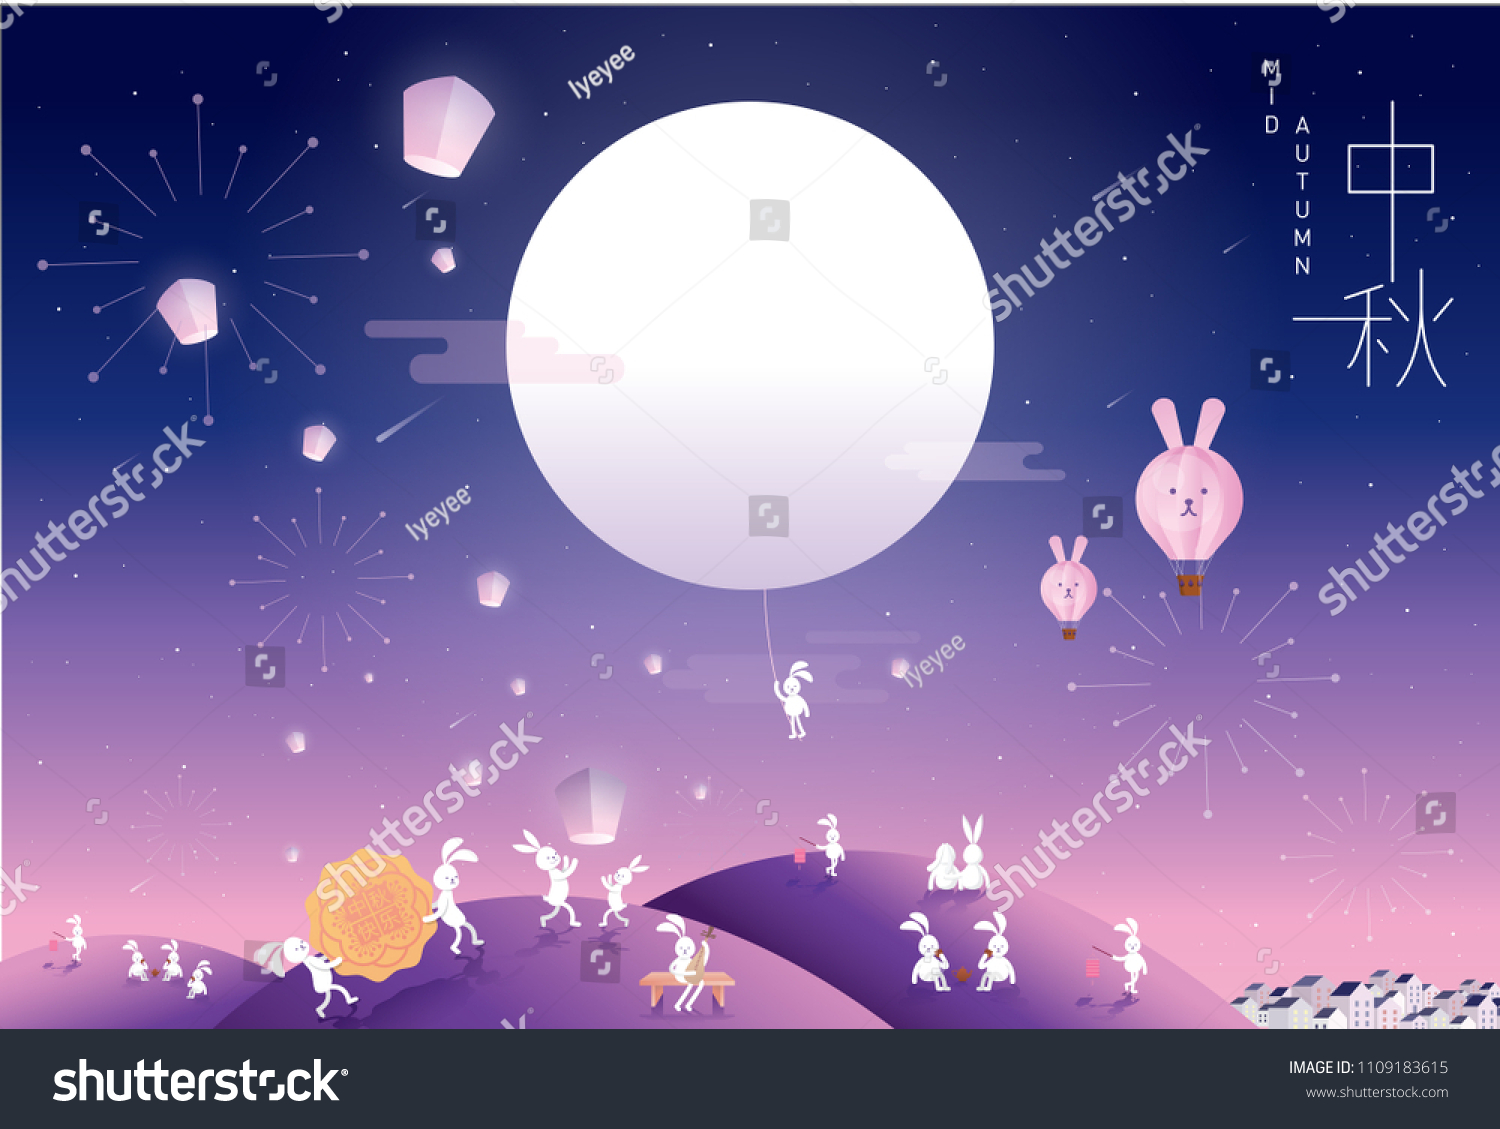 Mid Autumn Festivalmooncake Festival Greetings Template Stock Vector